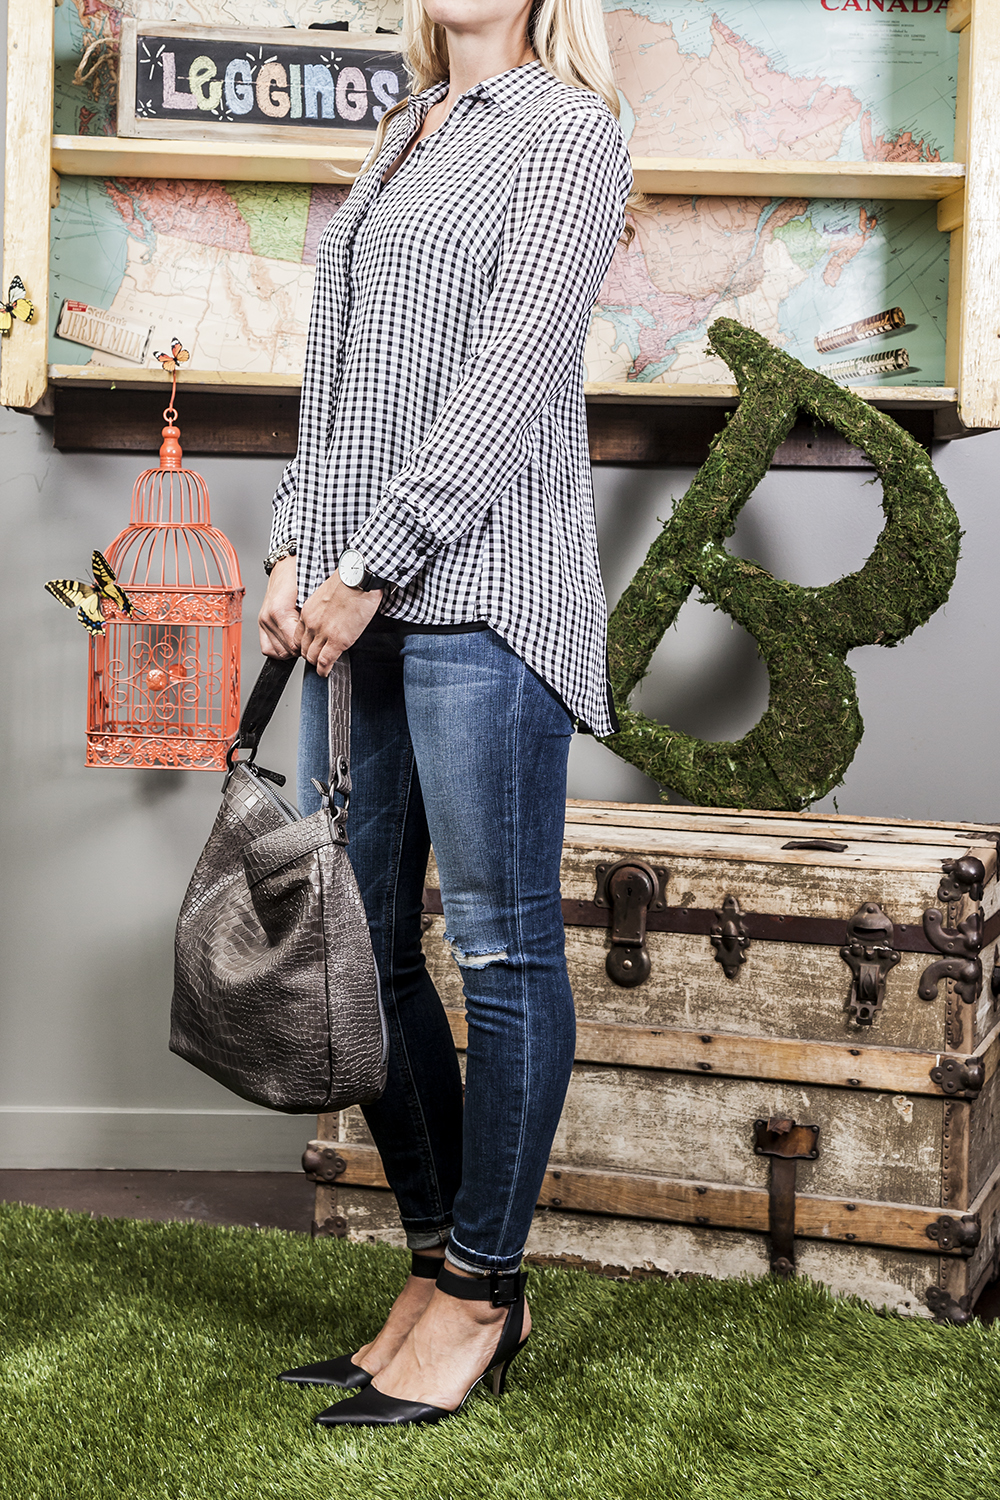 back-to-school-shopping-denim-and-tops-fall-2015-at-bella-maas-boutique-edmonton